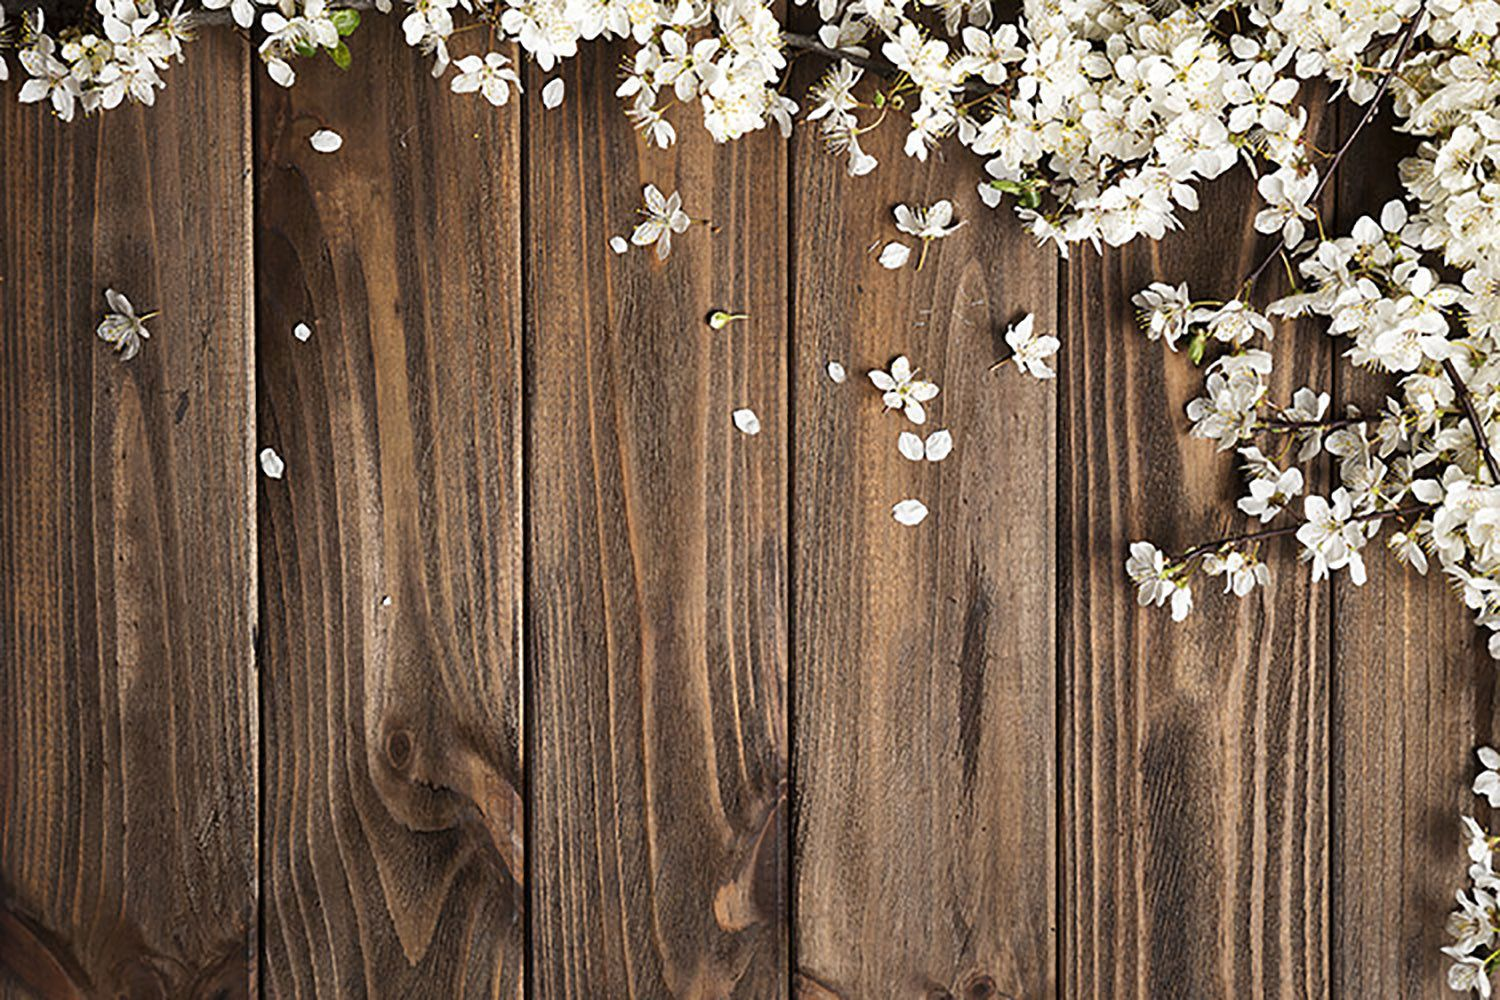 Vintage Wood Wall Backdrop For Photography White Flowers Etsy In 2020 Wall Backdrops Photography Backdrops White Flowers